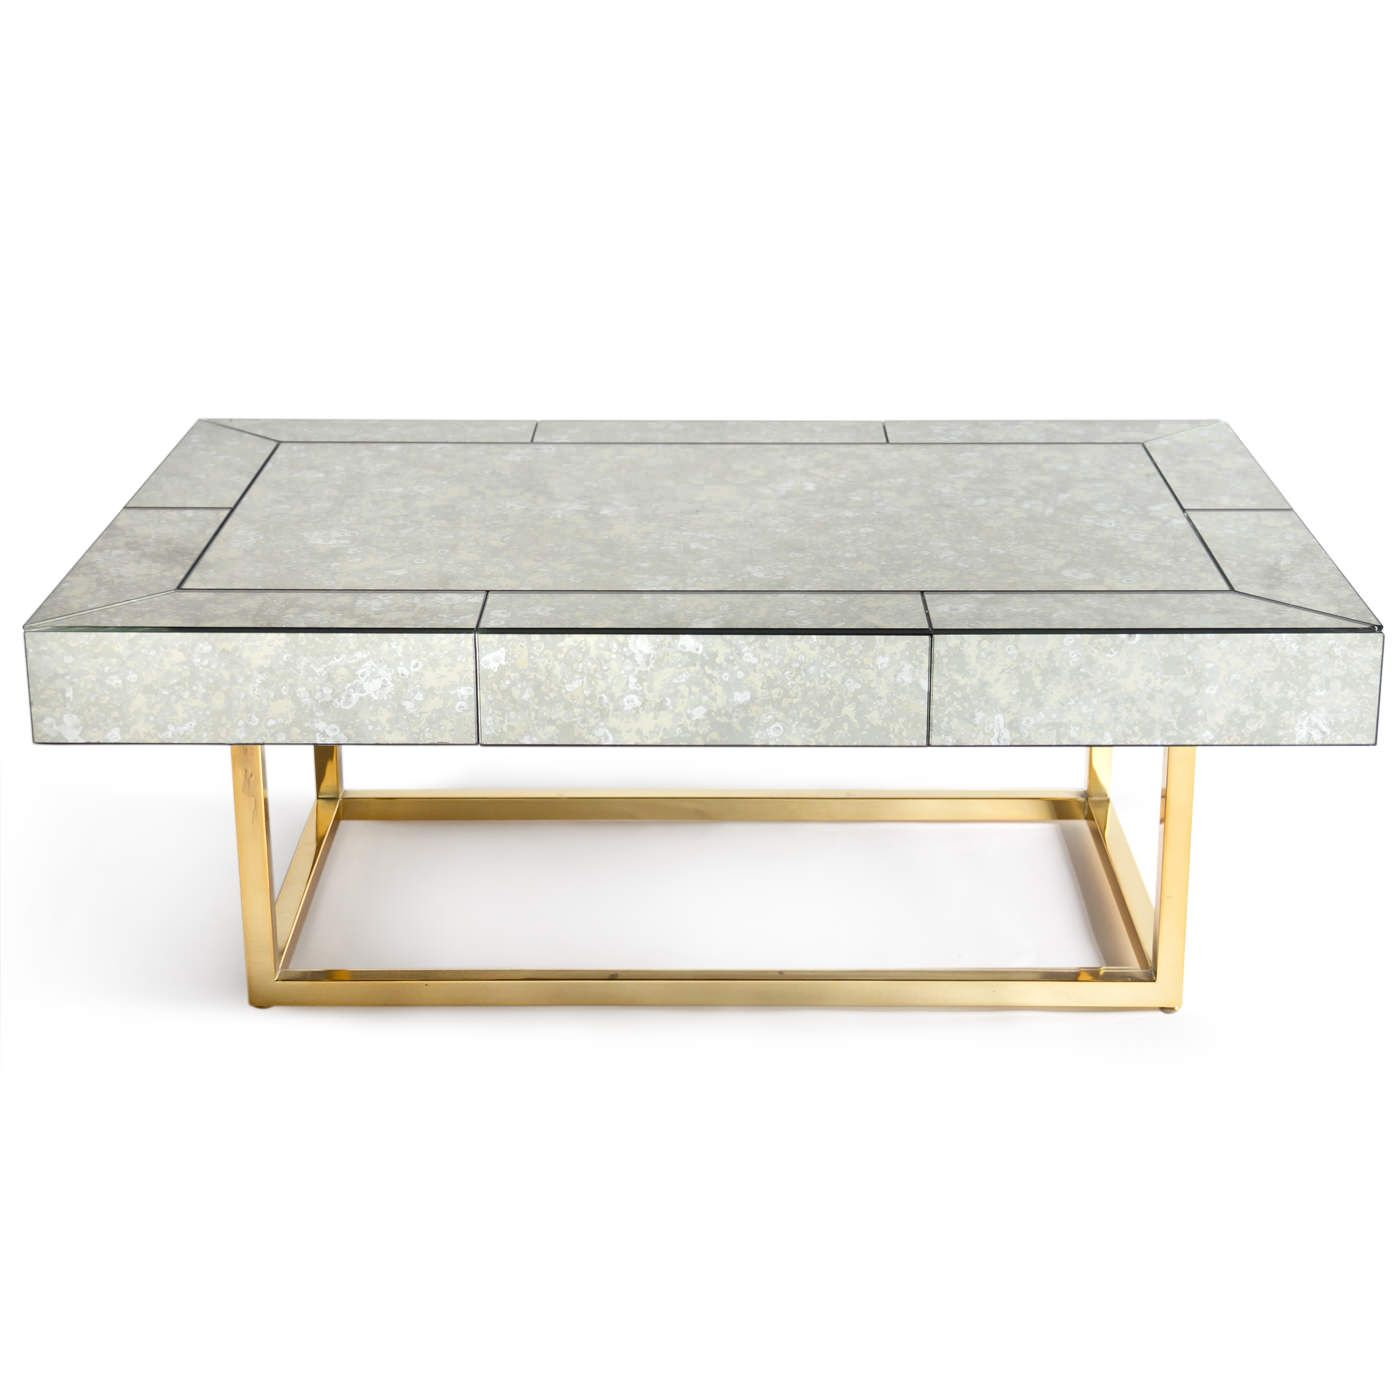 Mid Century Modern Luxury Furniture Delphine Mirrored Cocktail Table Coffee Table Coffee Table Design Table [ jpg ]